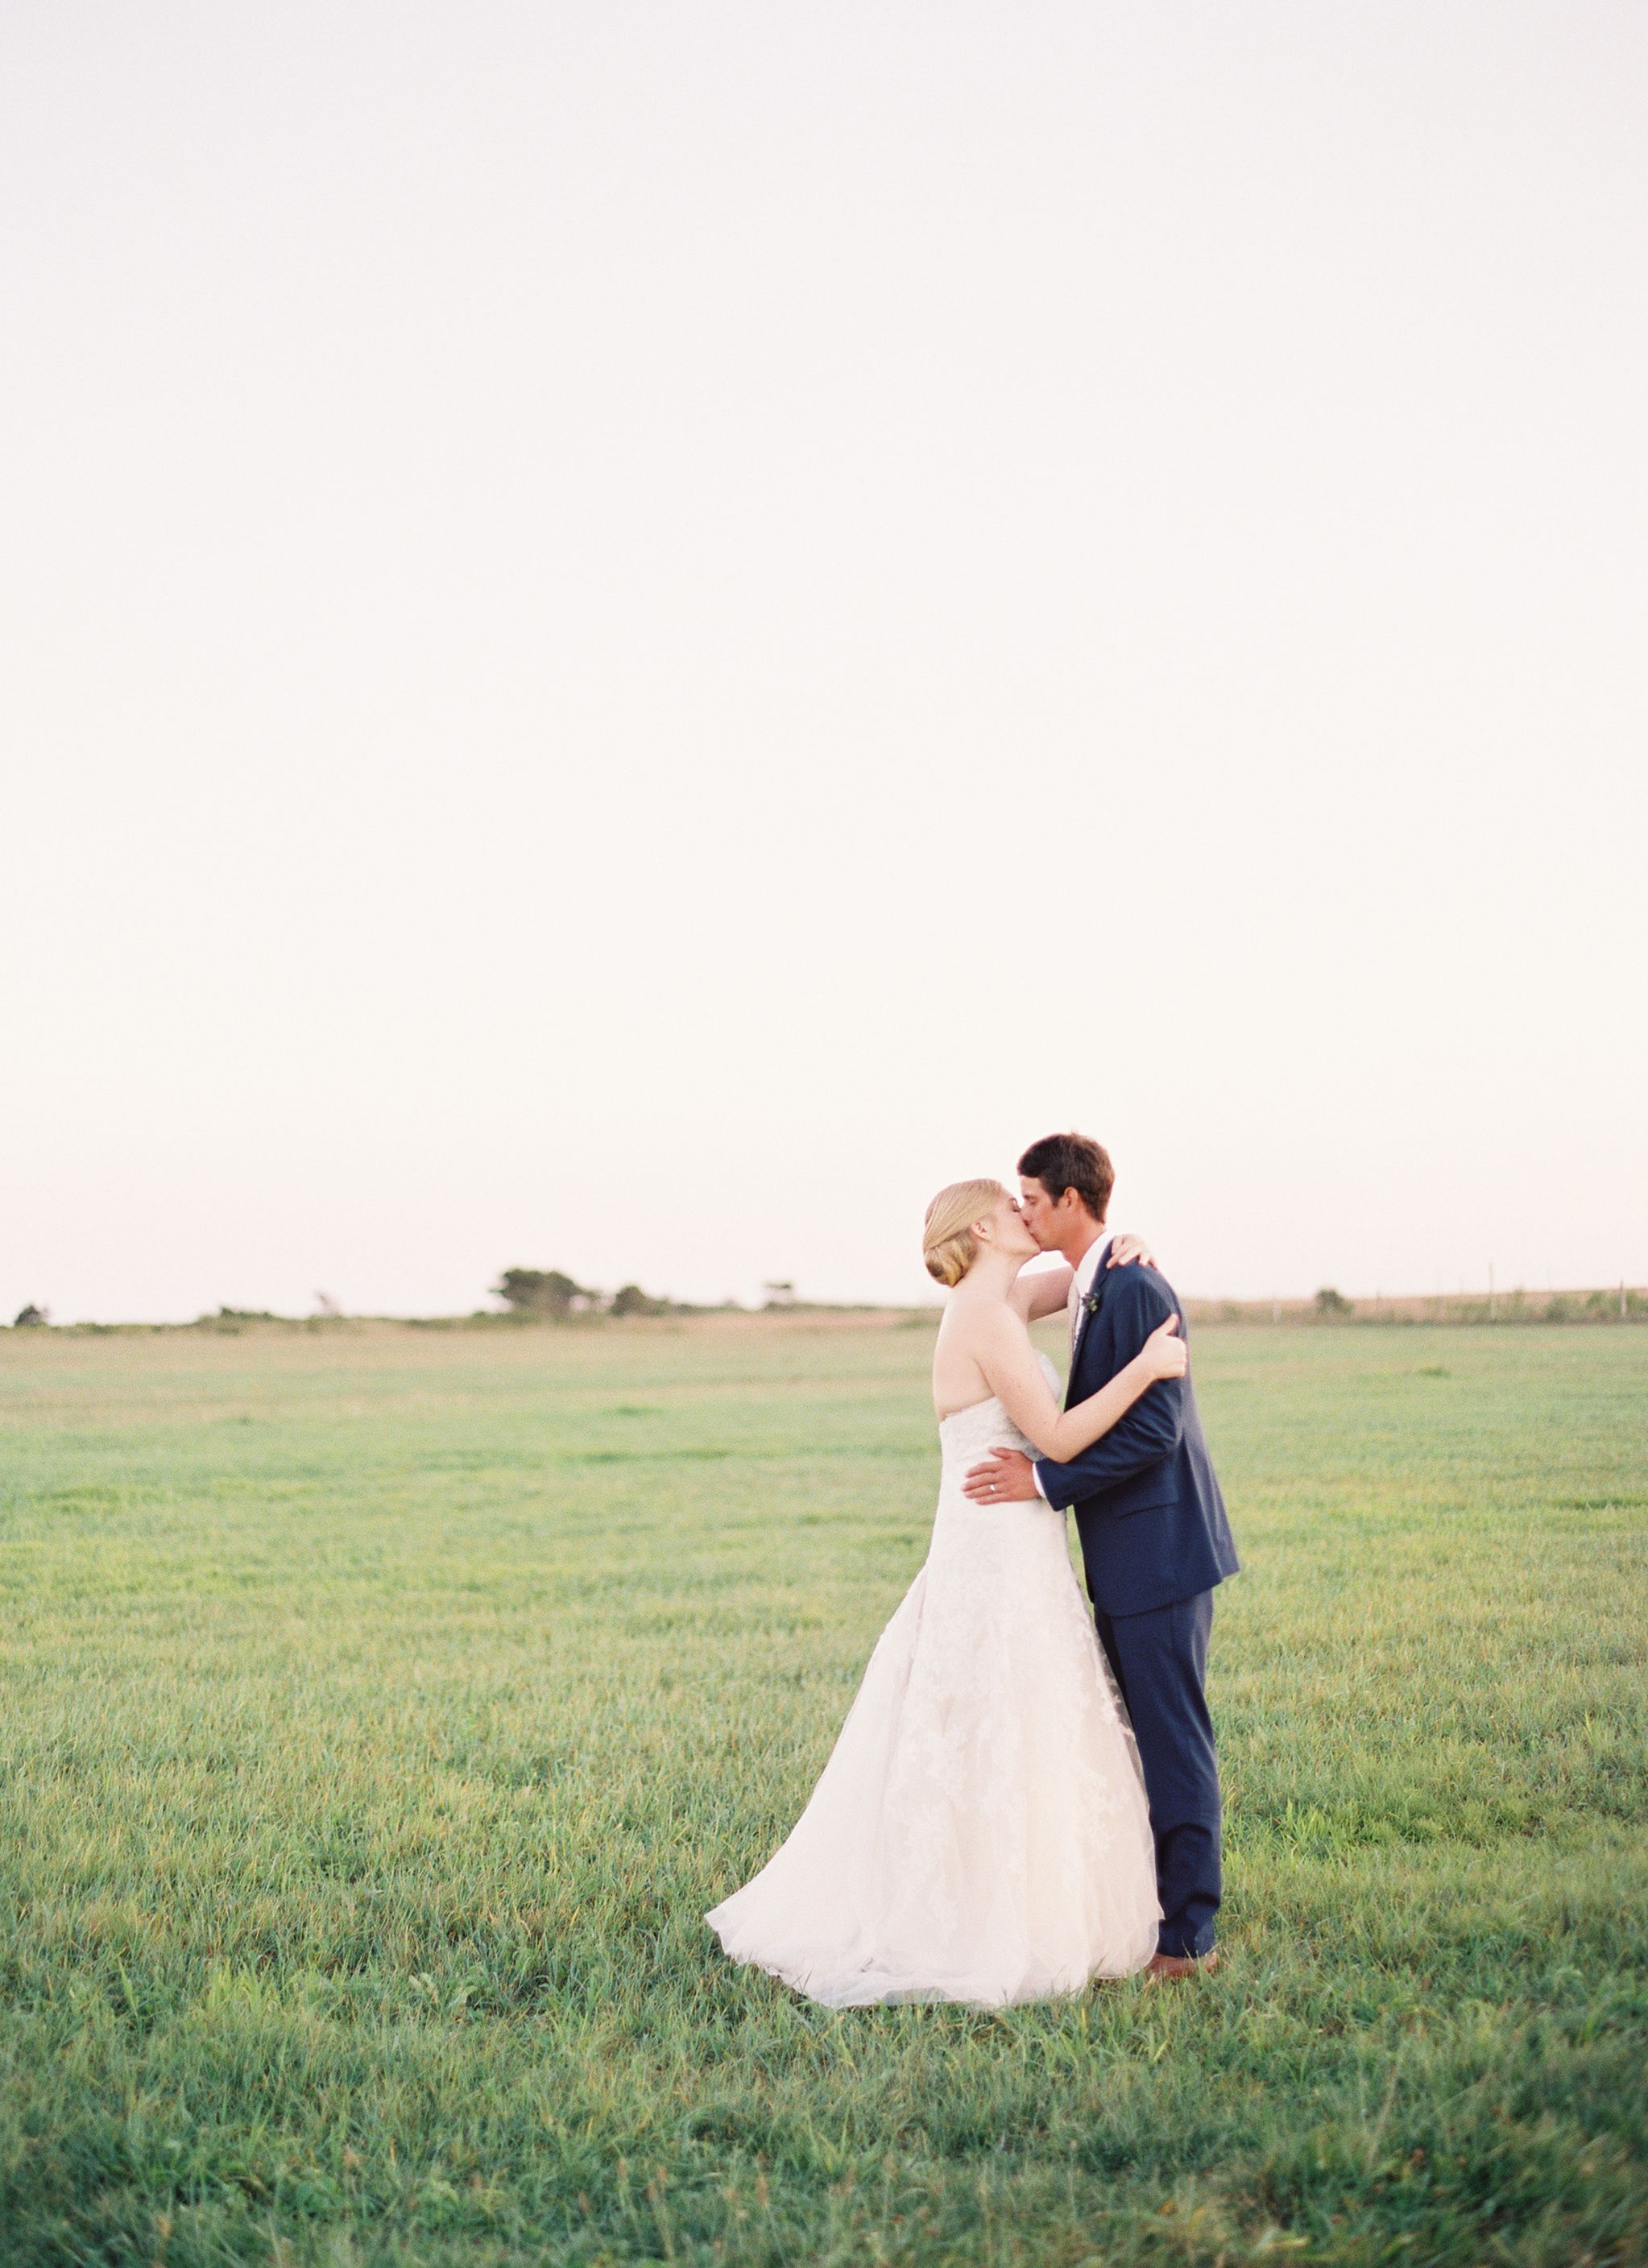 Sunset Portraits in an Open Field for this Nantucket Wedding